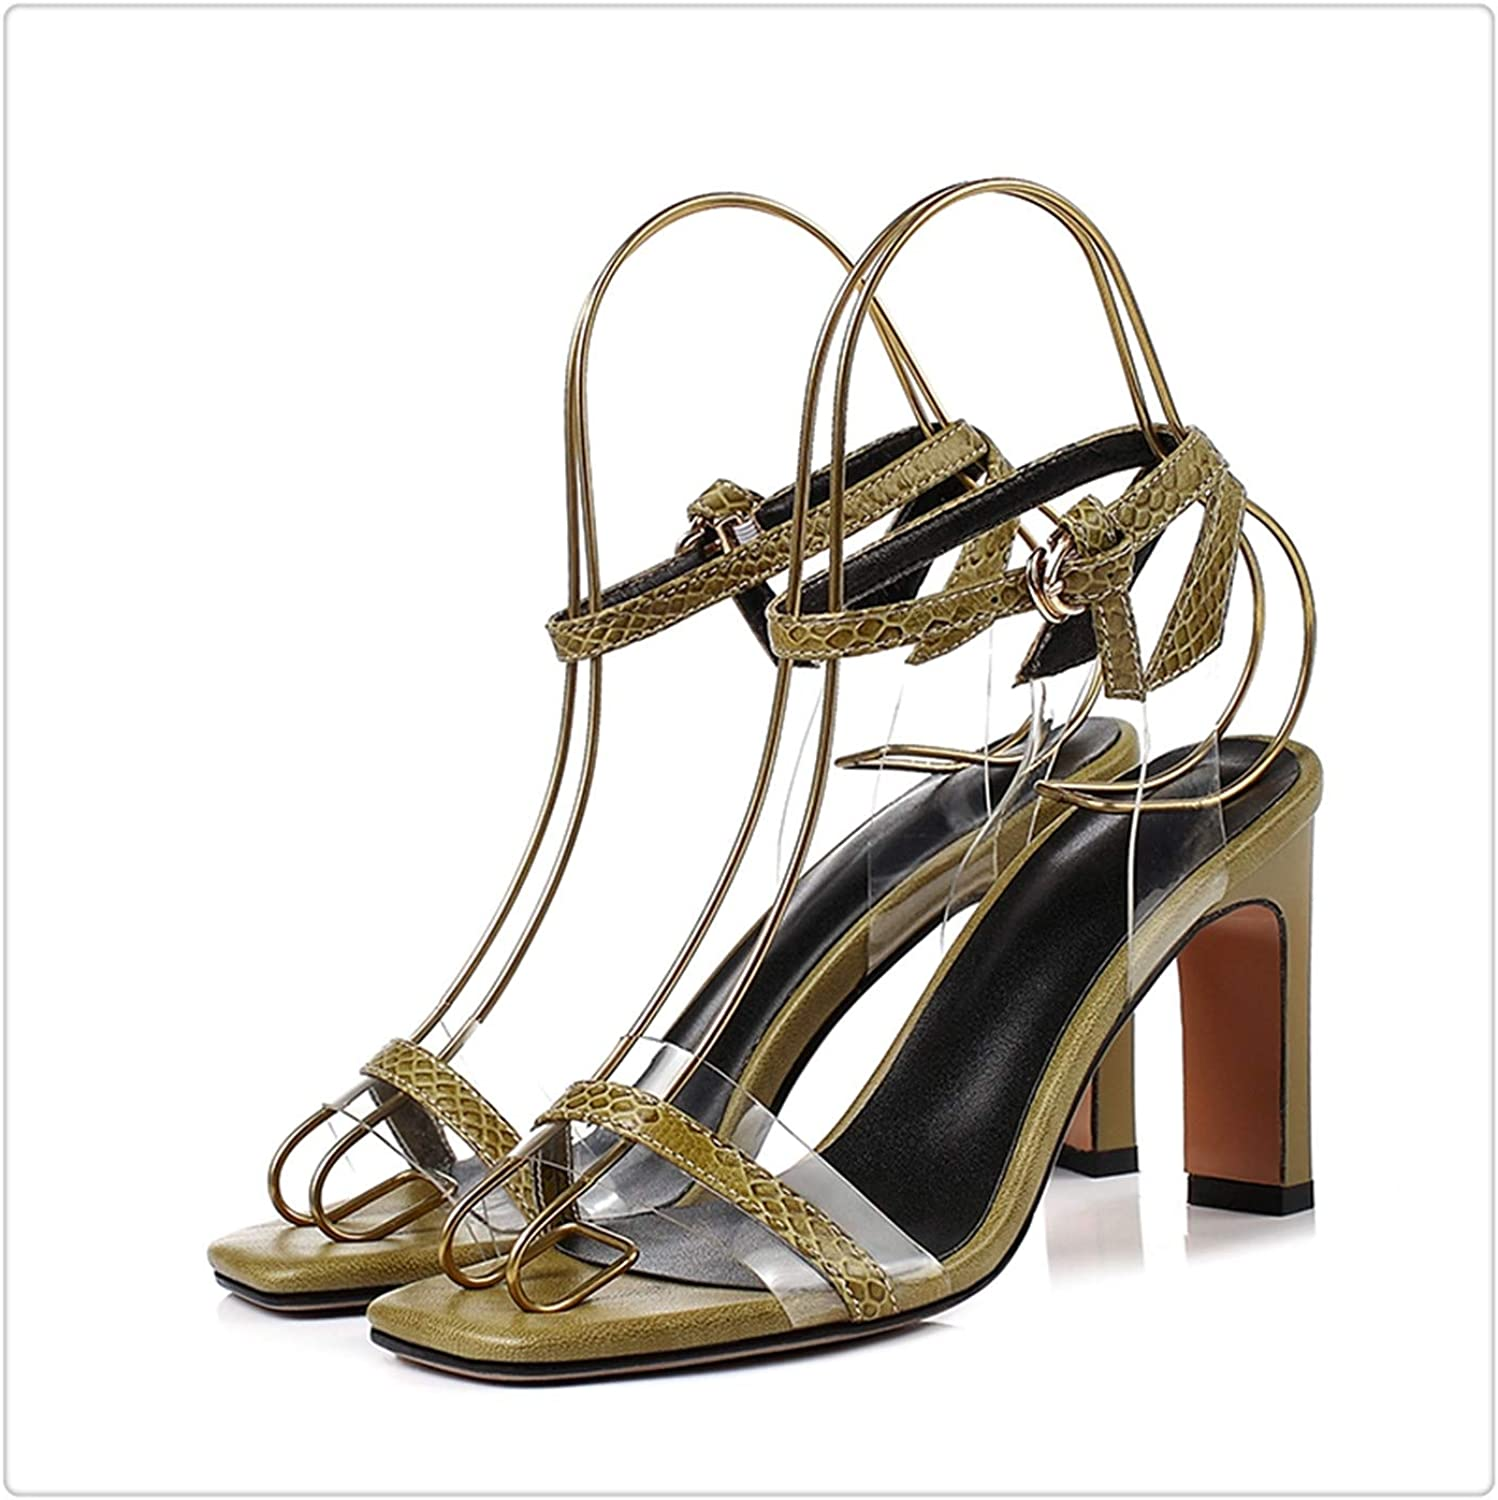 NNHLPO& Genuine Leather Basic Women shoes High Heels Sandals Strange Style shoes Buckle